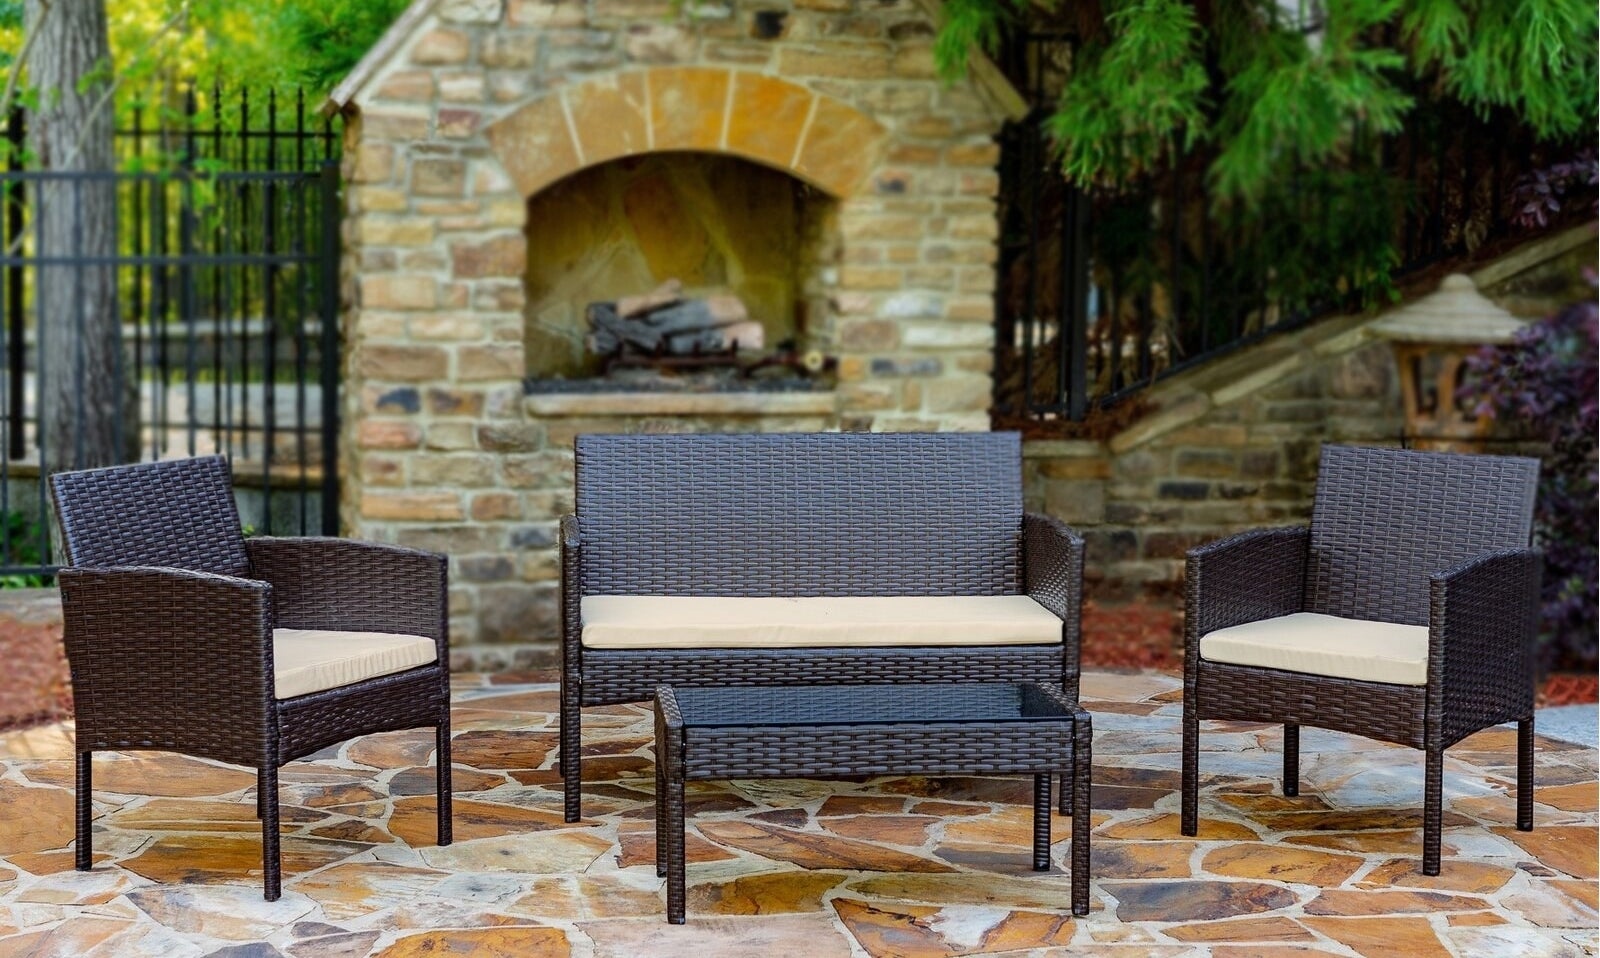 The brown patio set in front of an outdoor fireplace